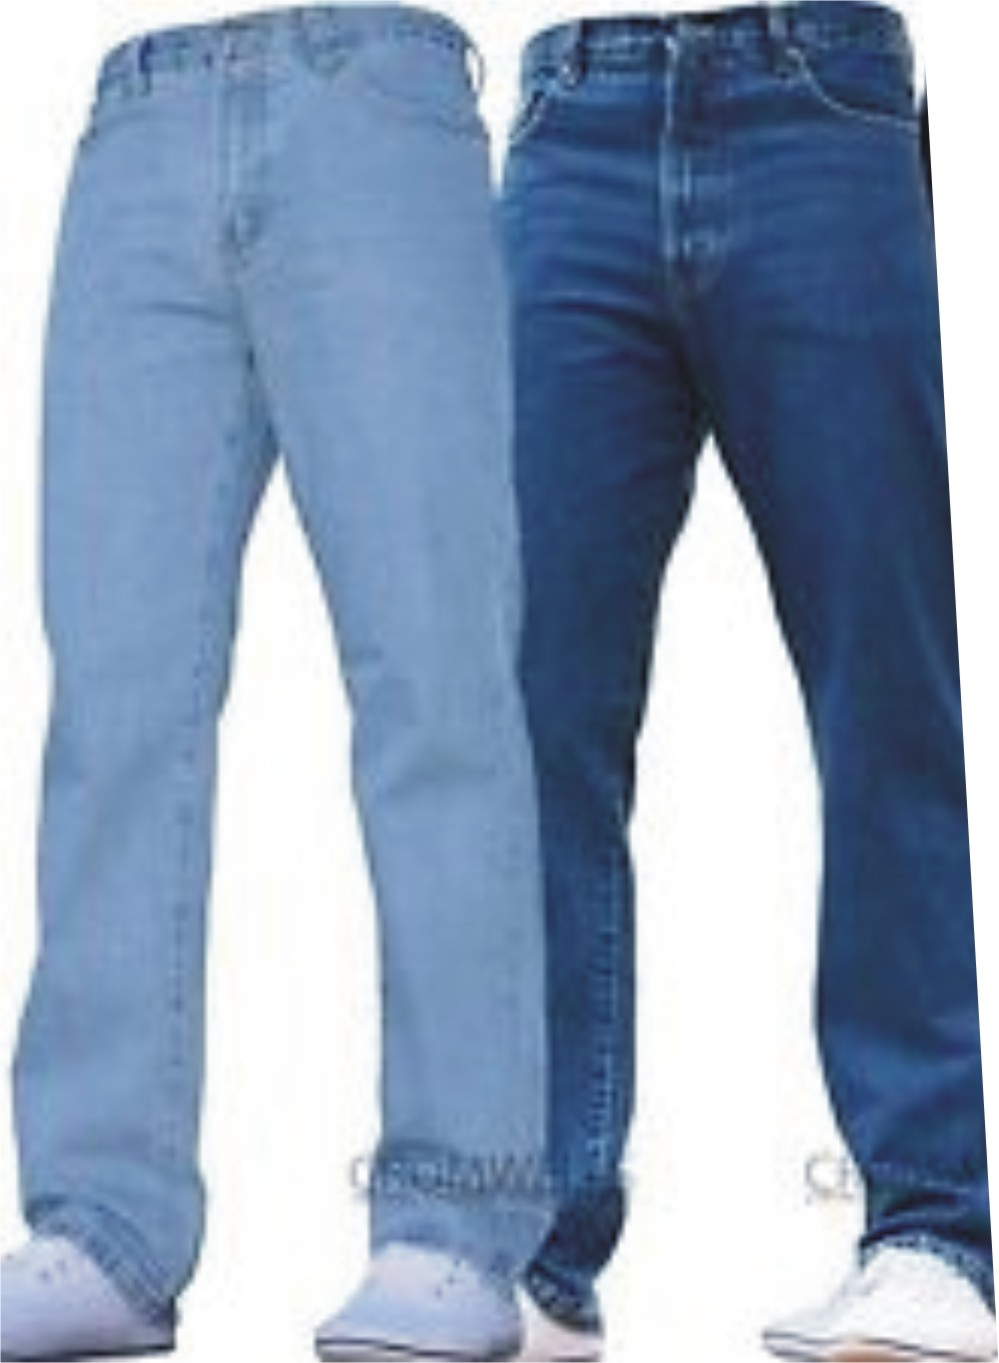 Branded Jeans for Men under Rs. 399/- Jul 2017 | Freeclues